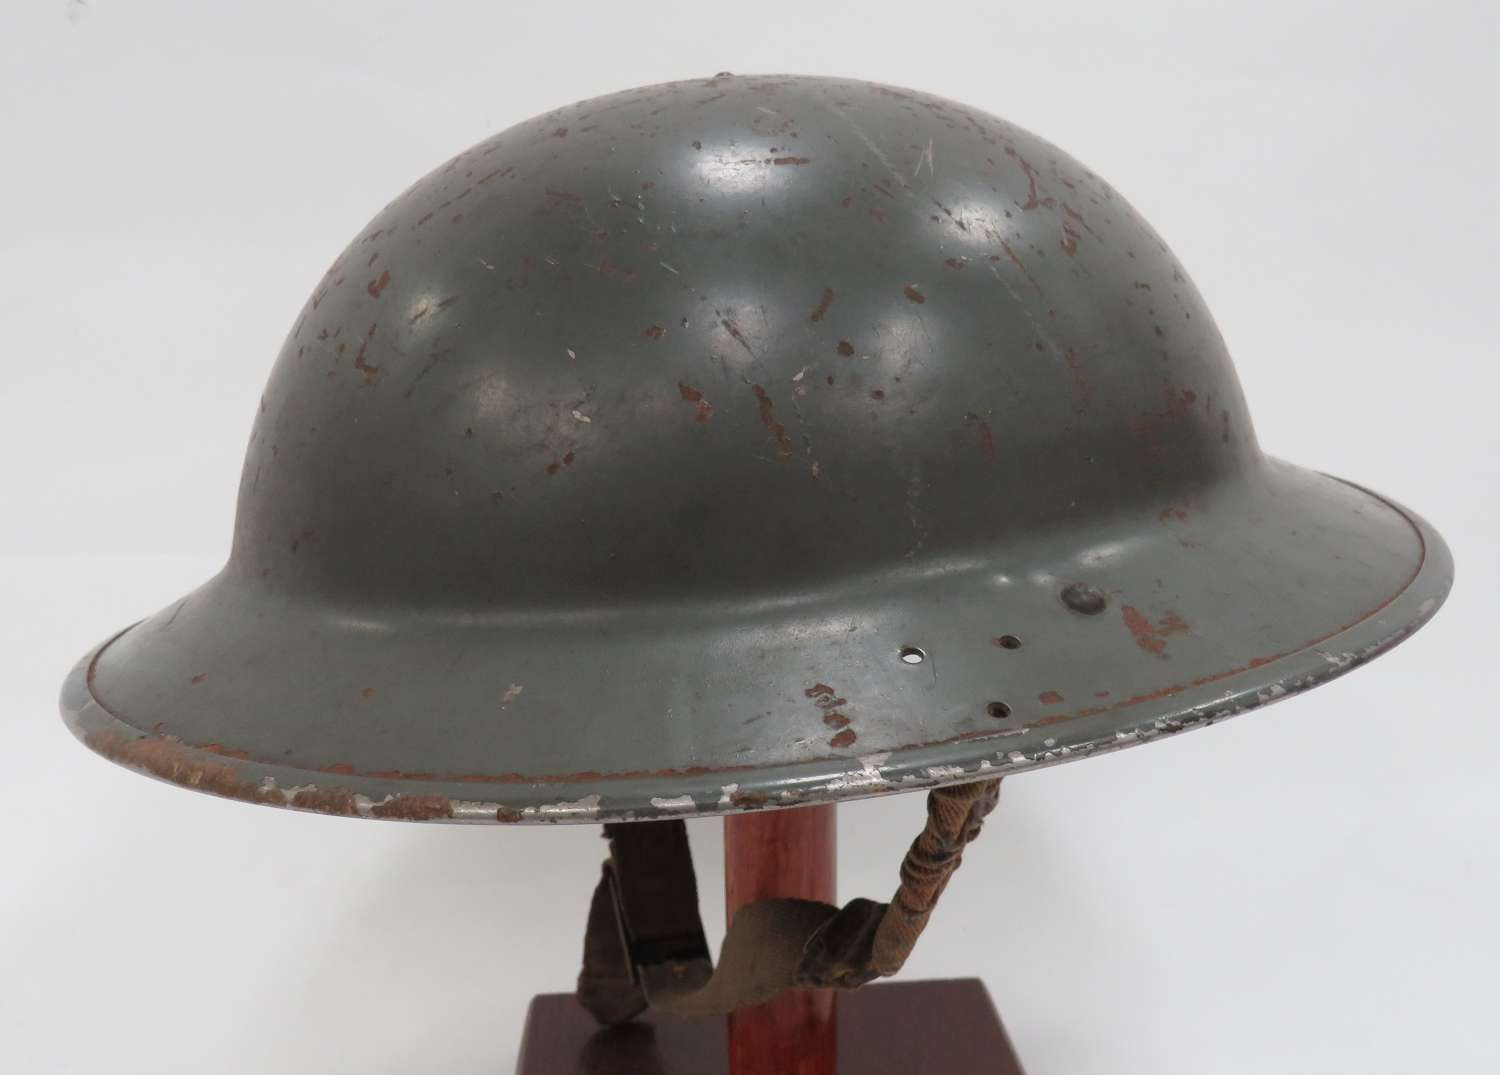 WW2 Mk2 1940 Dated British Home Front Helmet